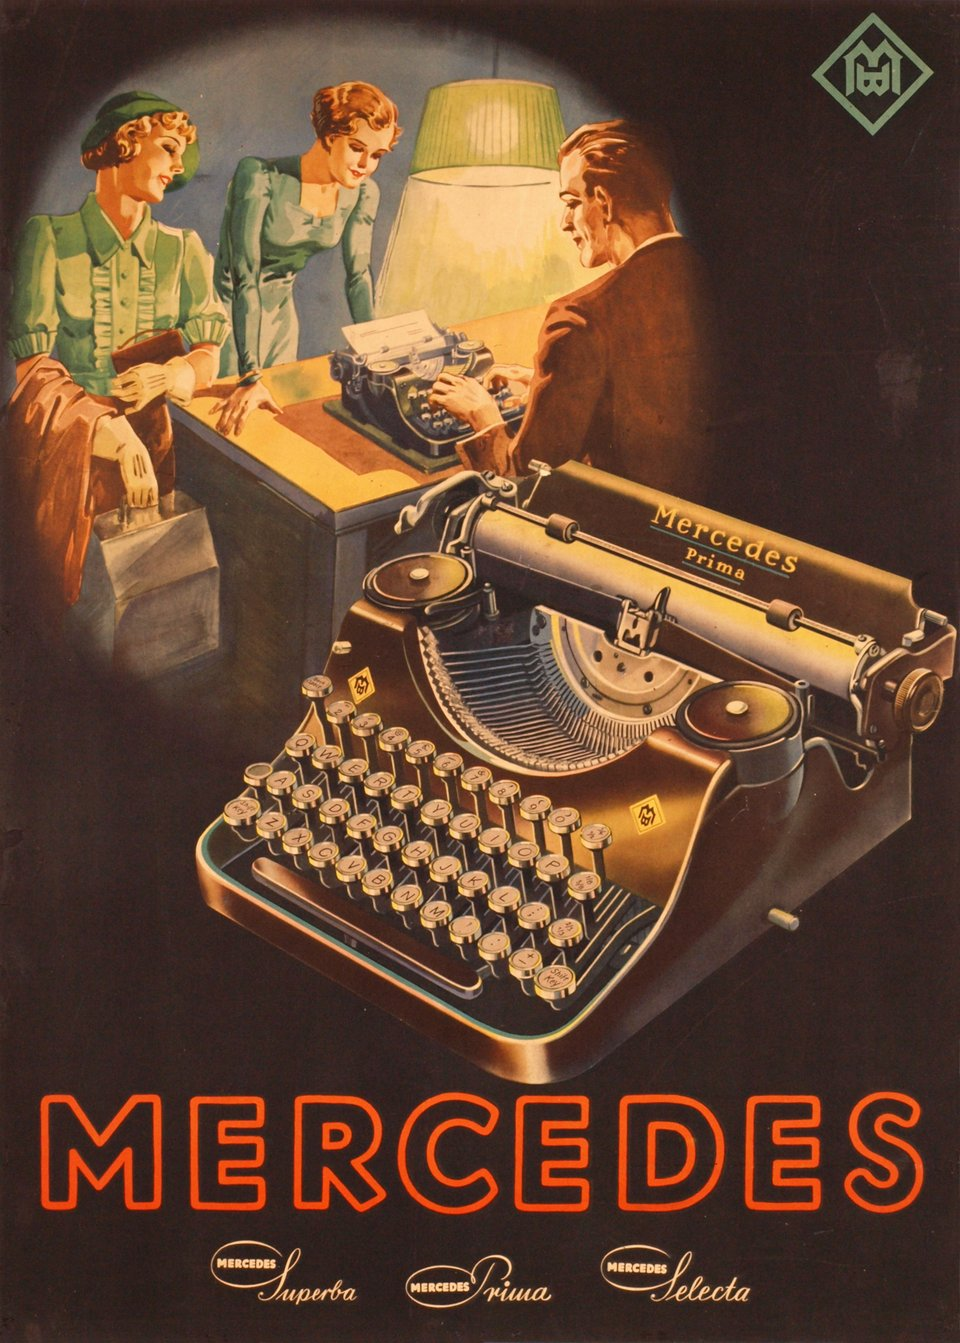 Mercedes, Superb Primo Selecta – Affiche ancienne – ANONYMOUS – 1930